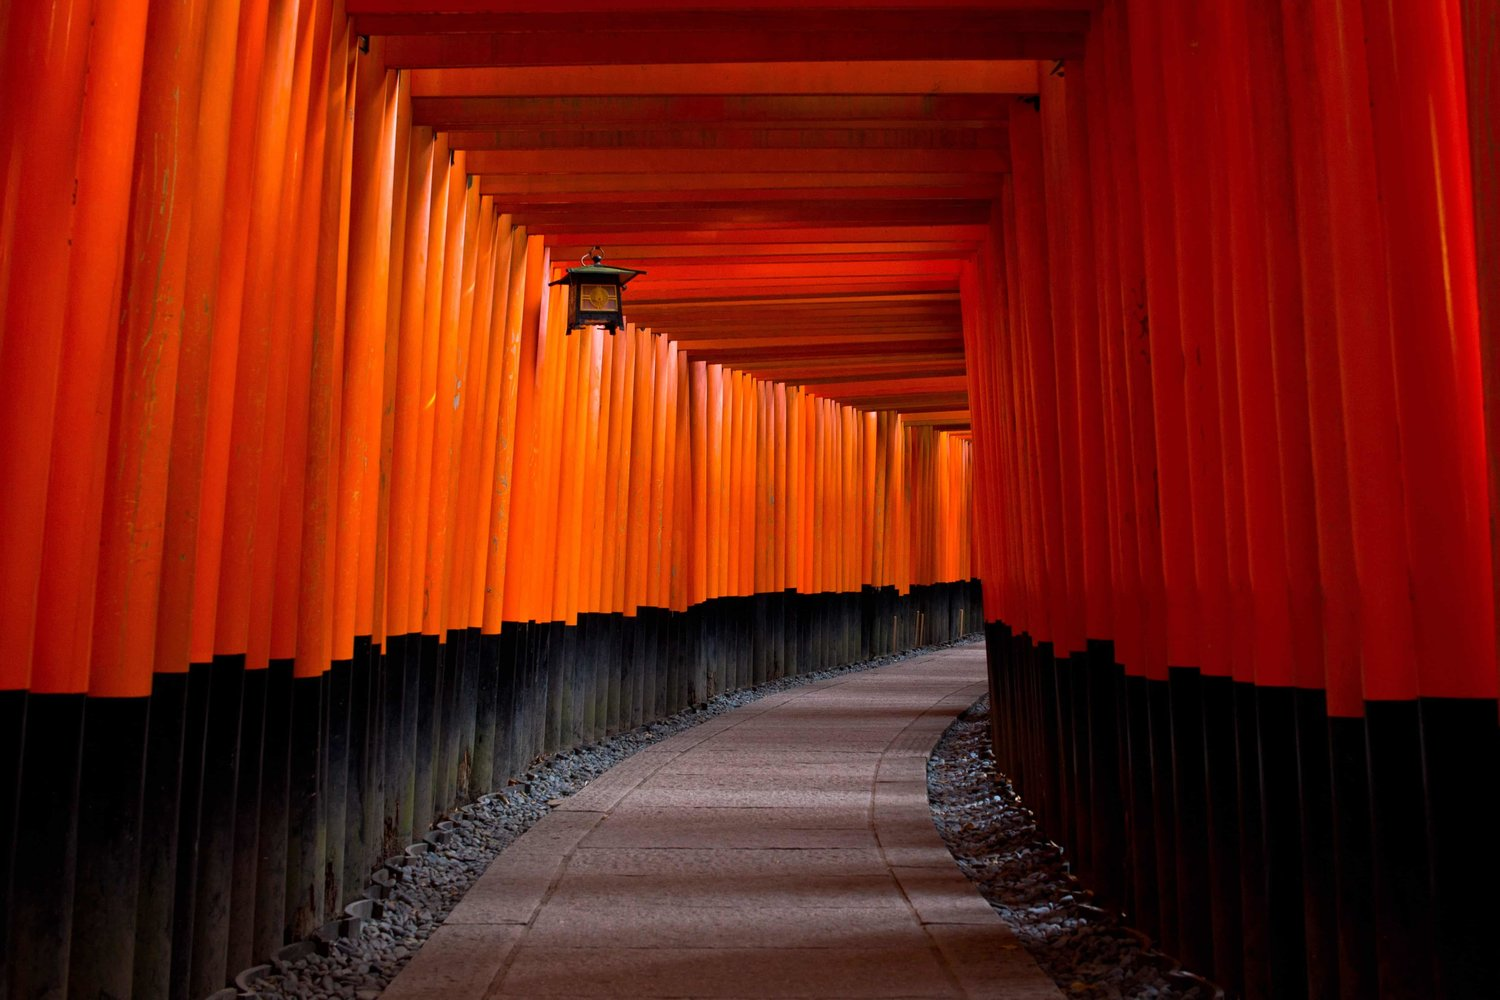 red japanese architecture